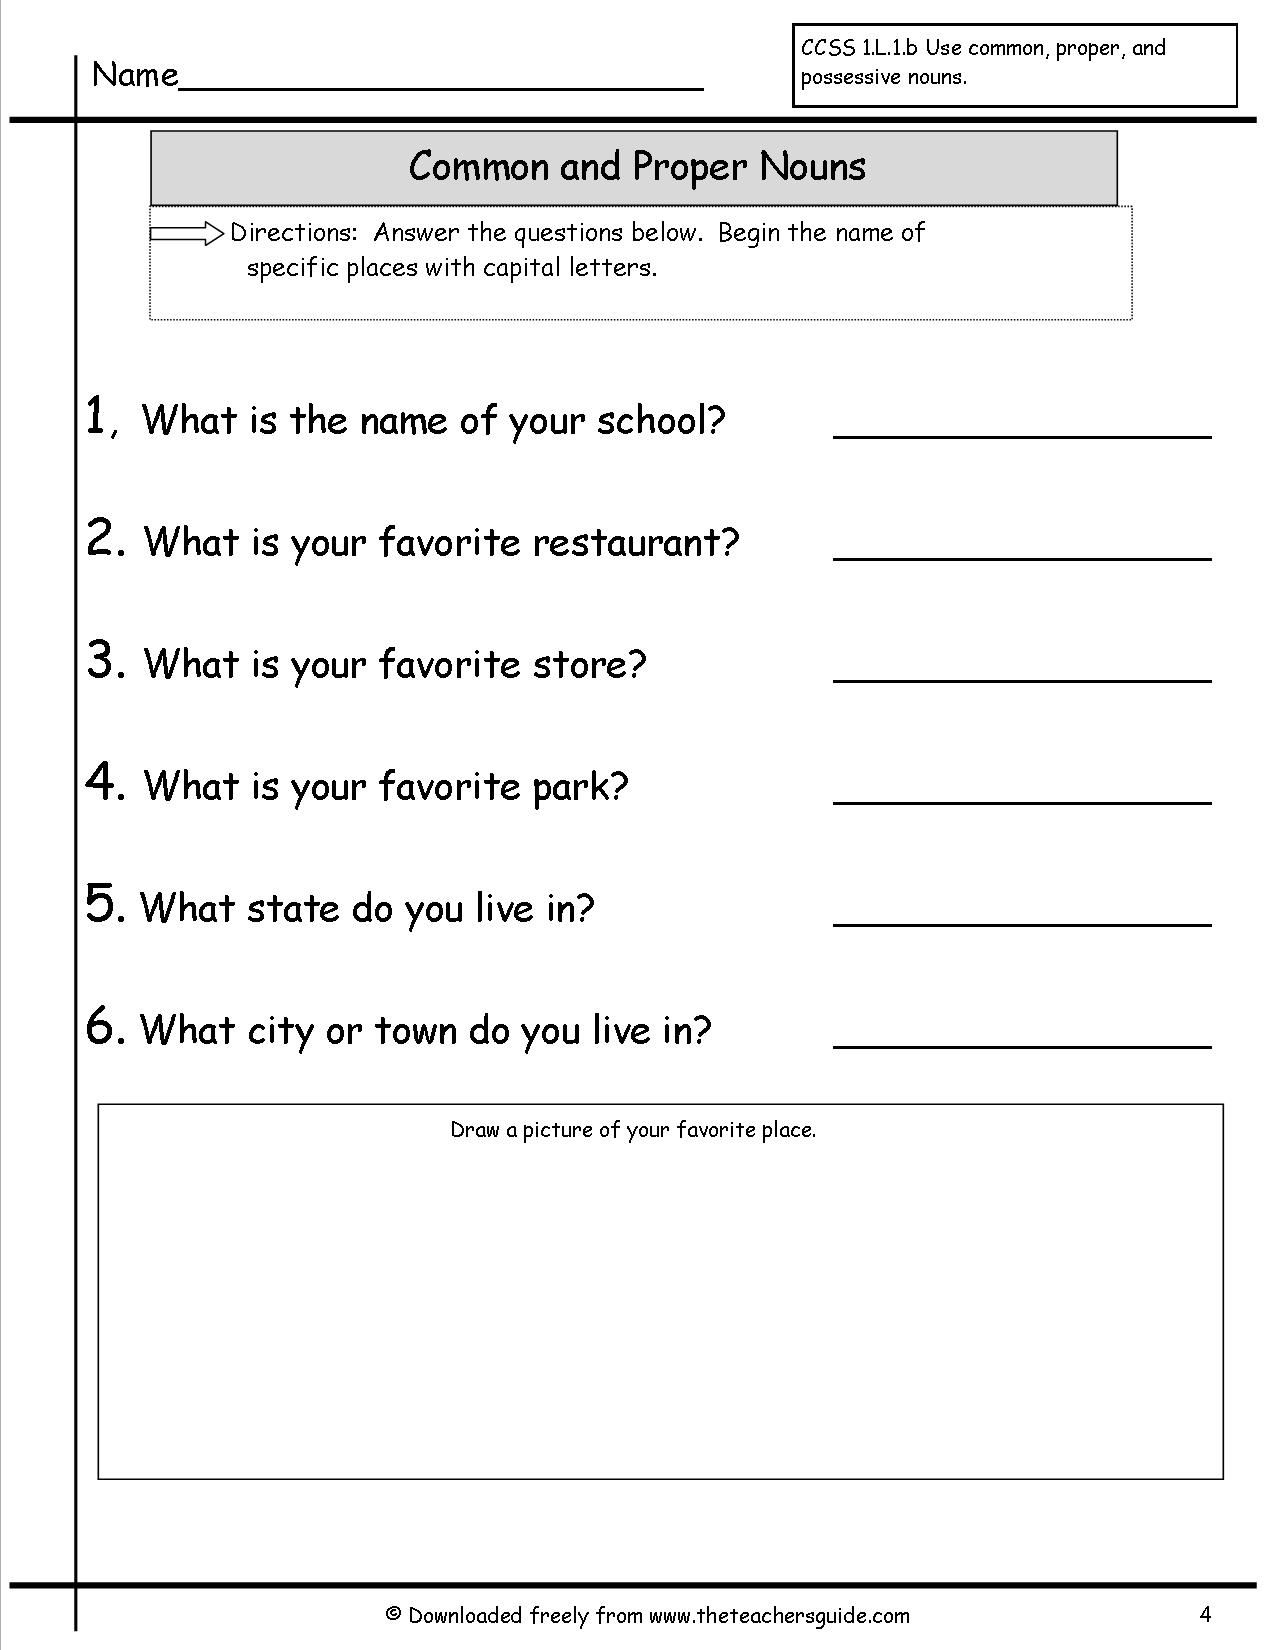 hight resolution of common and proper nouns worksheet   Proper nouns worksheet